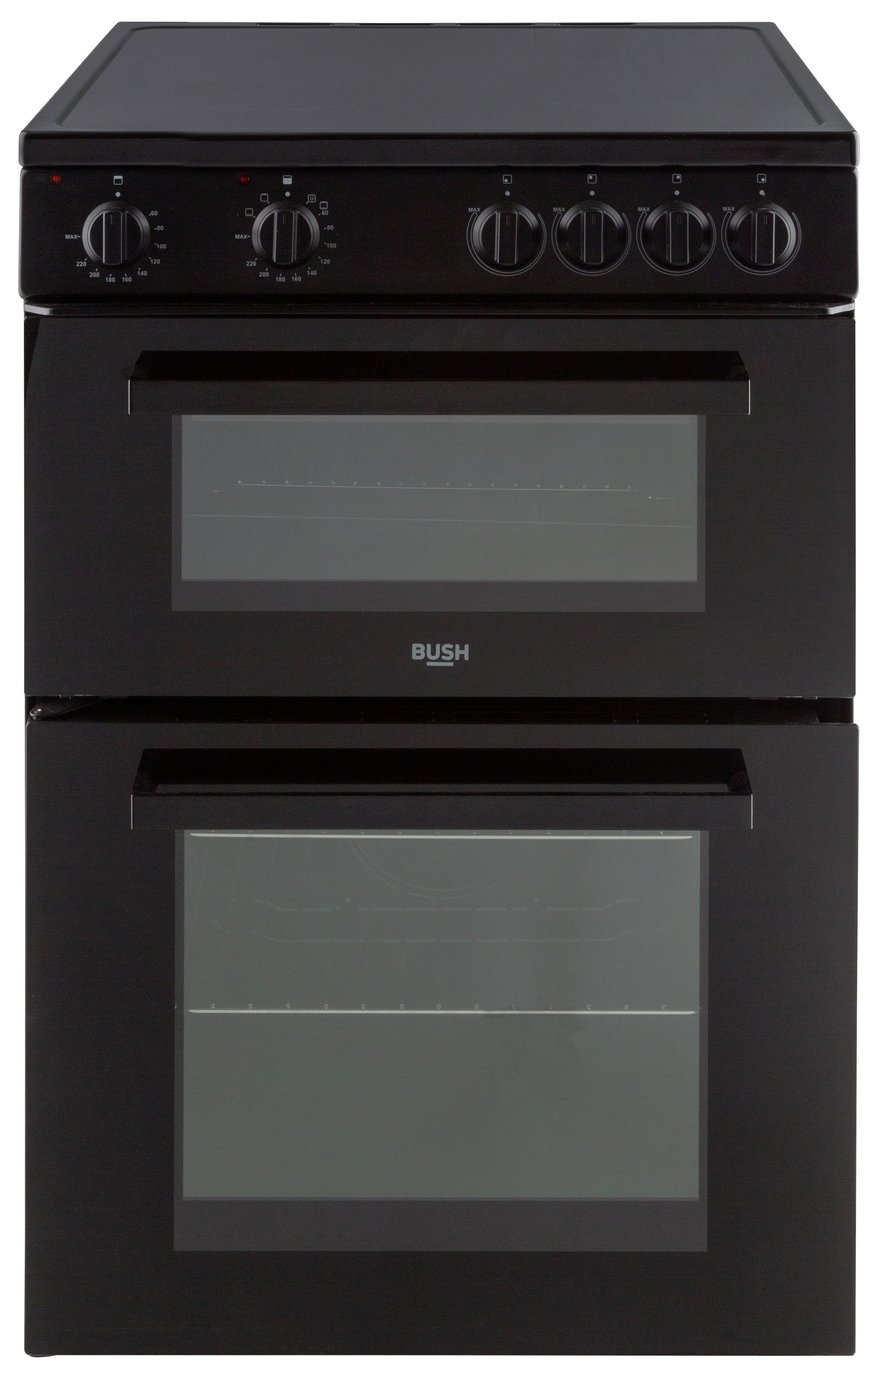 Bush B60TCBX 60cm Twin Cavity Electric Cooker - Black Best Price, Cheapest Prices